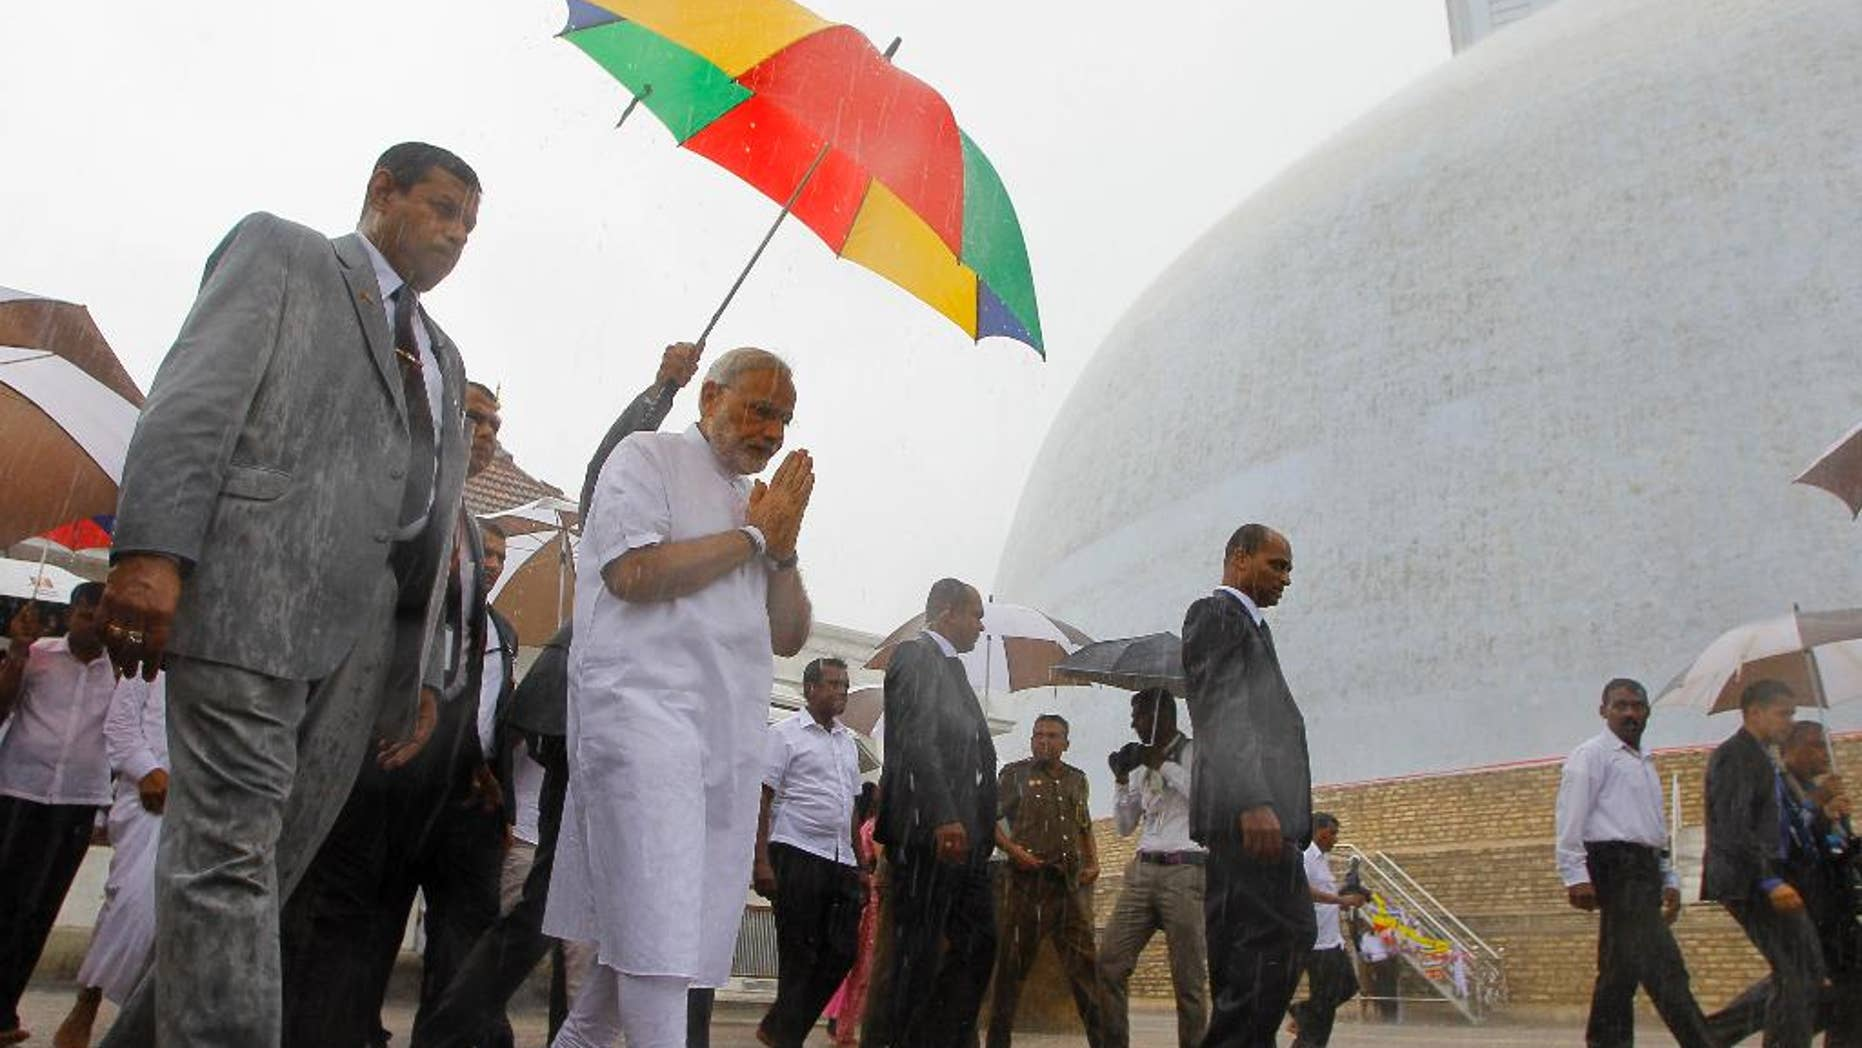 Indian Prime Minister Narendra Modi folds his hands in a sign of respect during his visit to Ruwanwelisaya, a sacred stupa in Anuradhapura, about 230 kilometers northeast of Colombo, Sri Lanka, Saturday, March 14, 2015. Modi said on Friday that India's neighbors should be the first beneficiaries of the nation's economic progress as he sought to woo smaller Indian Ocean states away from increasing Chinese influence. (AP Photo/Eranga Jayawardena)